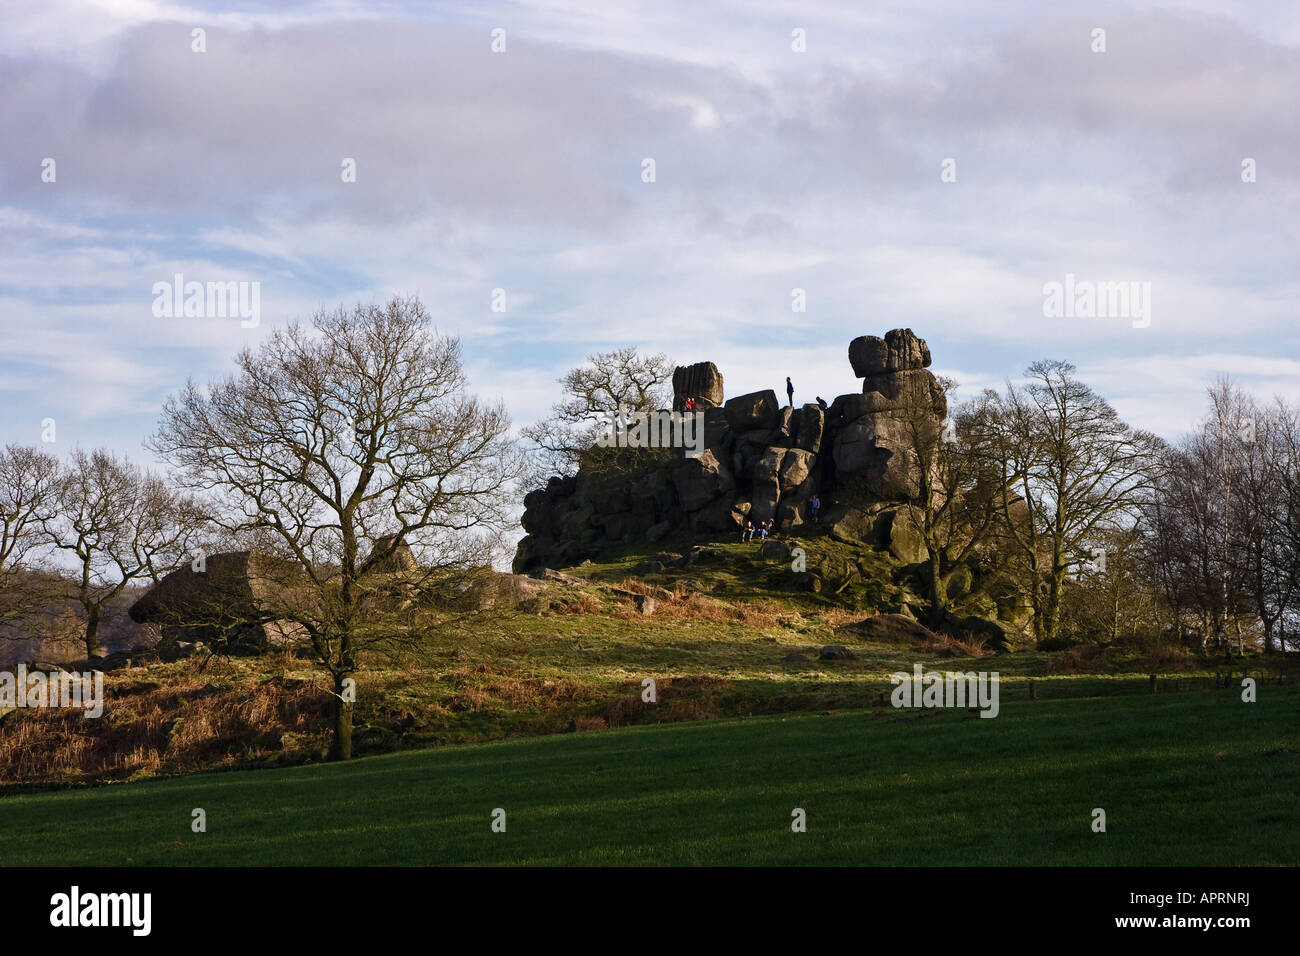 Robin Hood Stride, Harthill Moor, Peak District National Park, Derbyshire, England, Vereinigtes Königreich Stockfoto